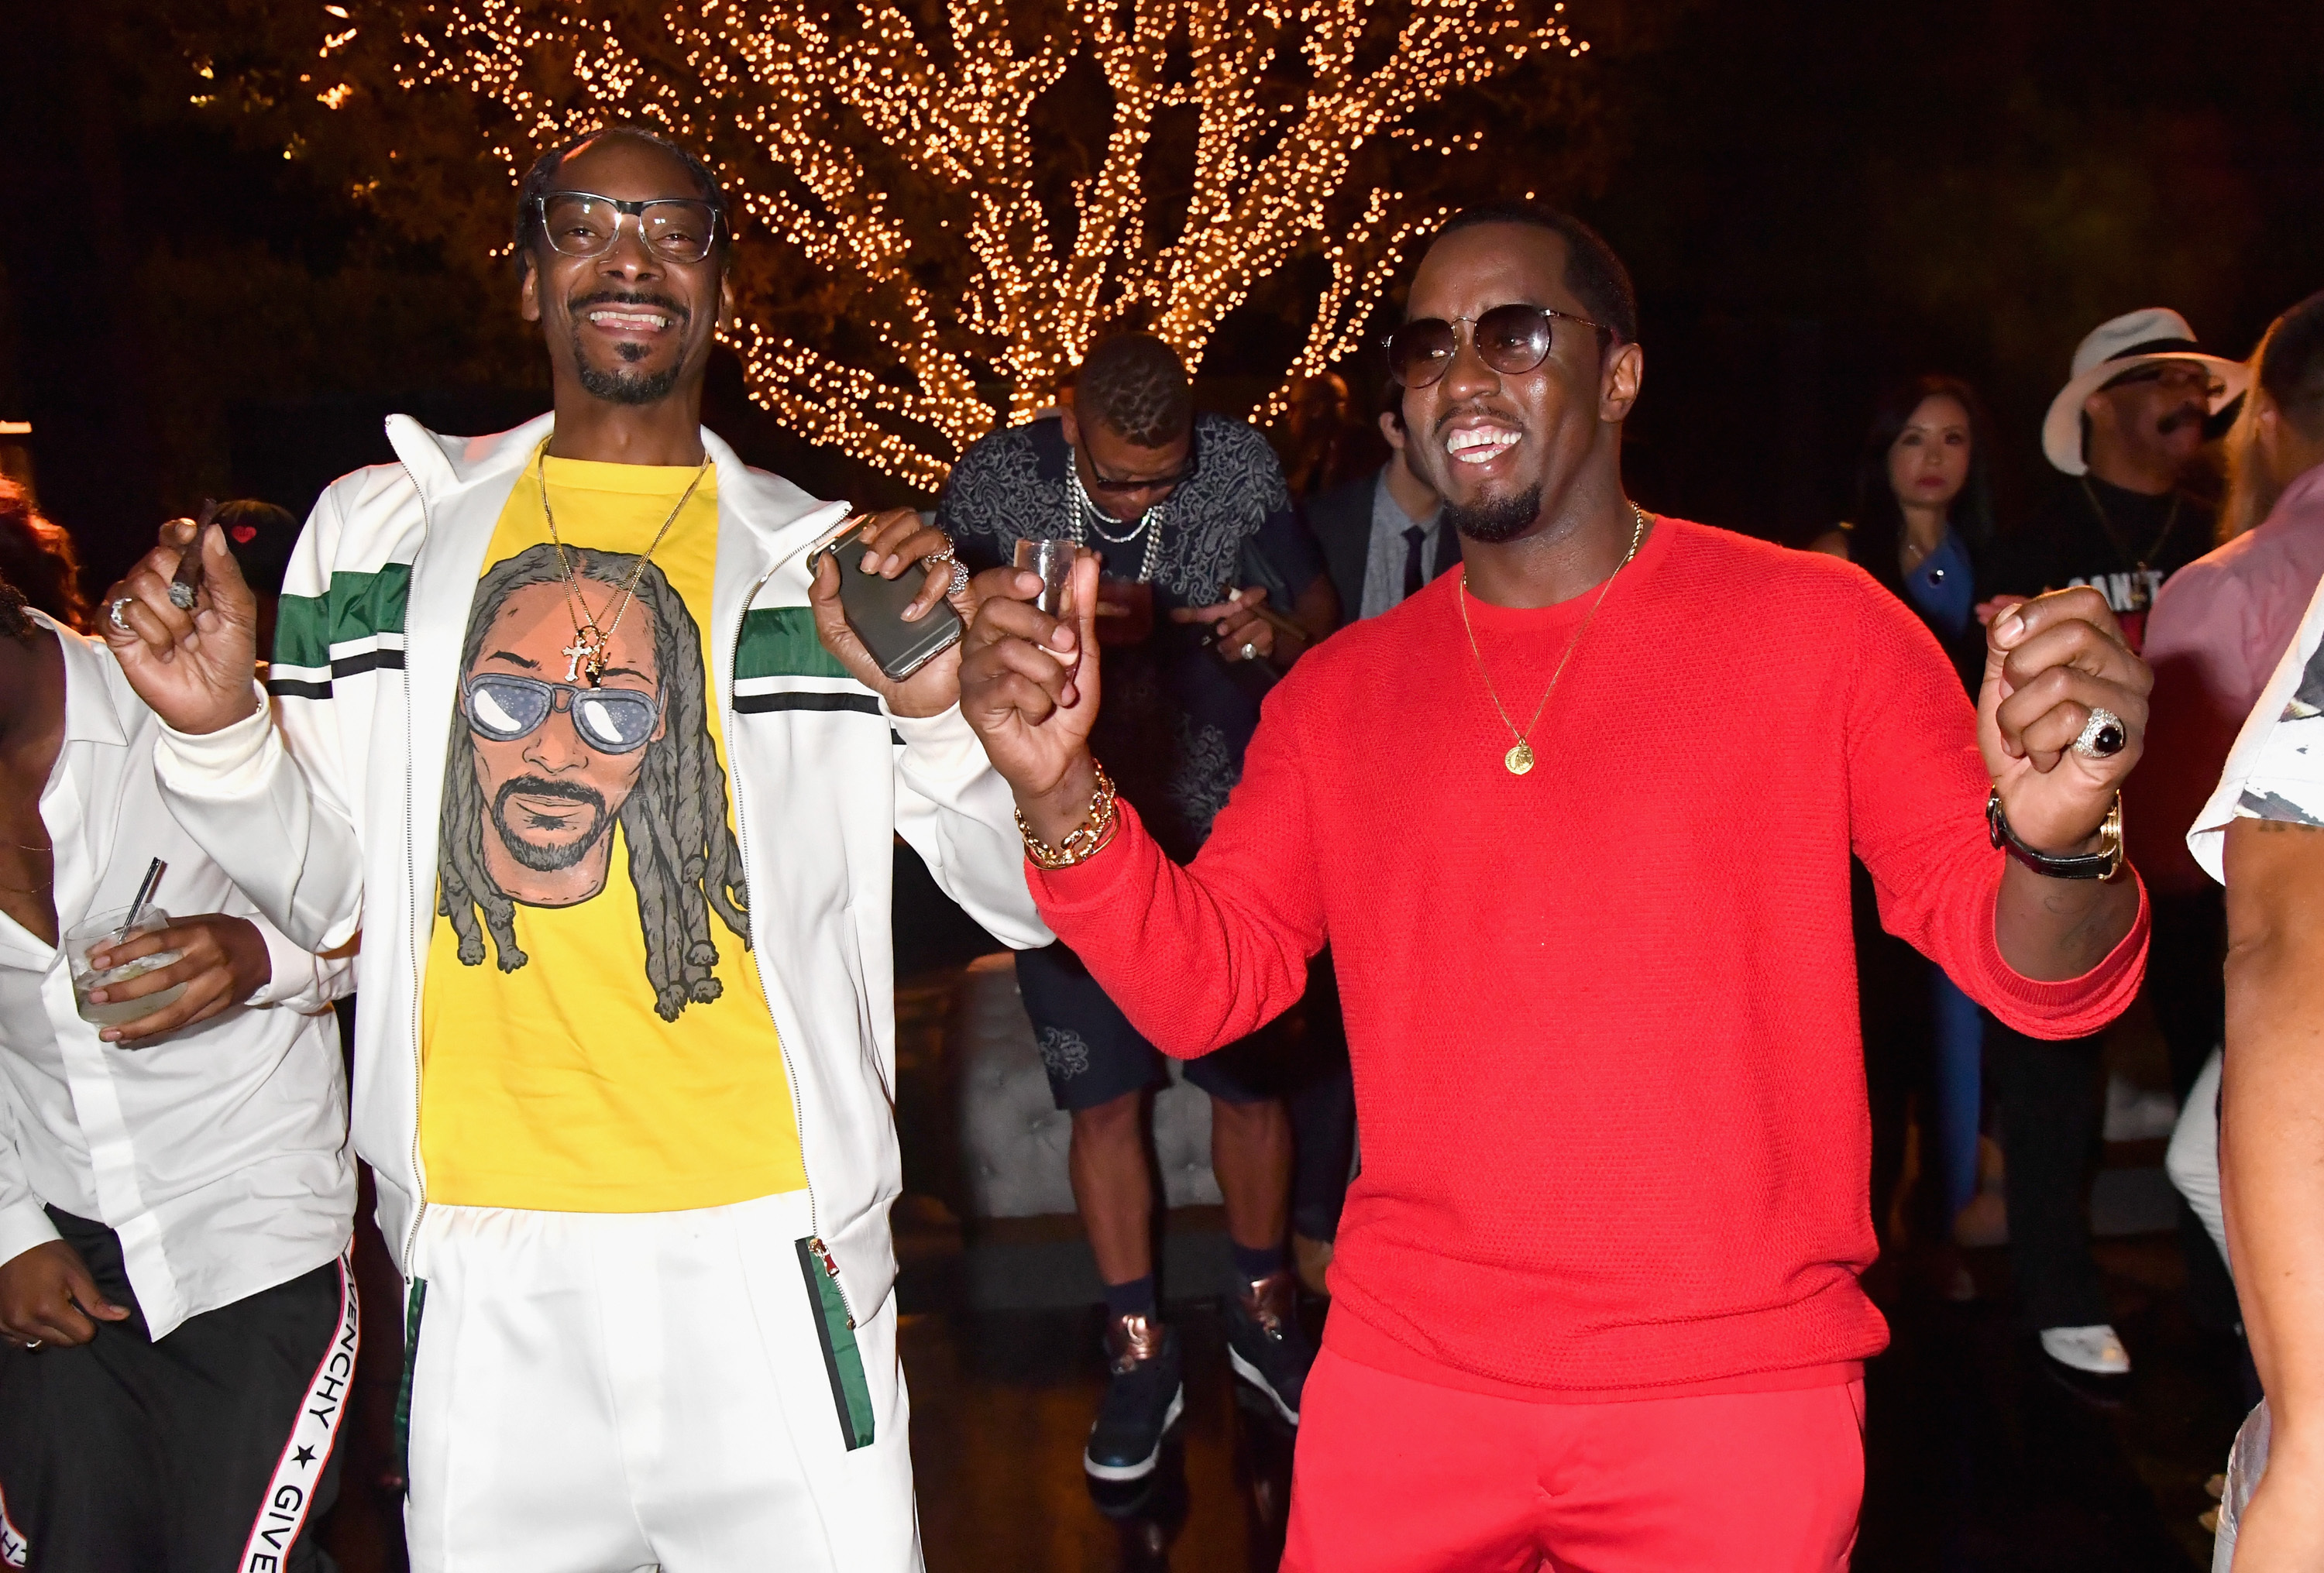 """Snoop Dogg toasts to Sean """"Diddy"""" Combs and the world premiere of Can't Stop Won't Stop at the official after party powered by CIROC Vodka and Deleon Vodka at a private residence in Los Angeles on June 21, 2017."""